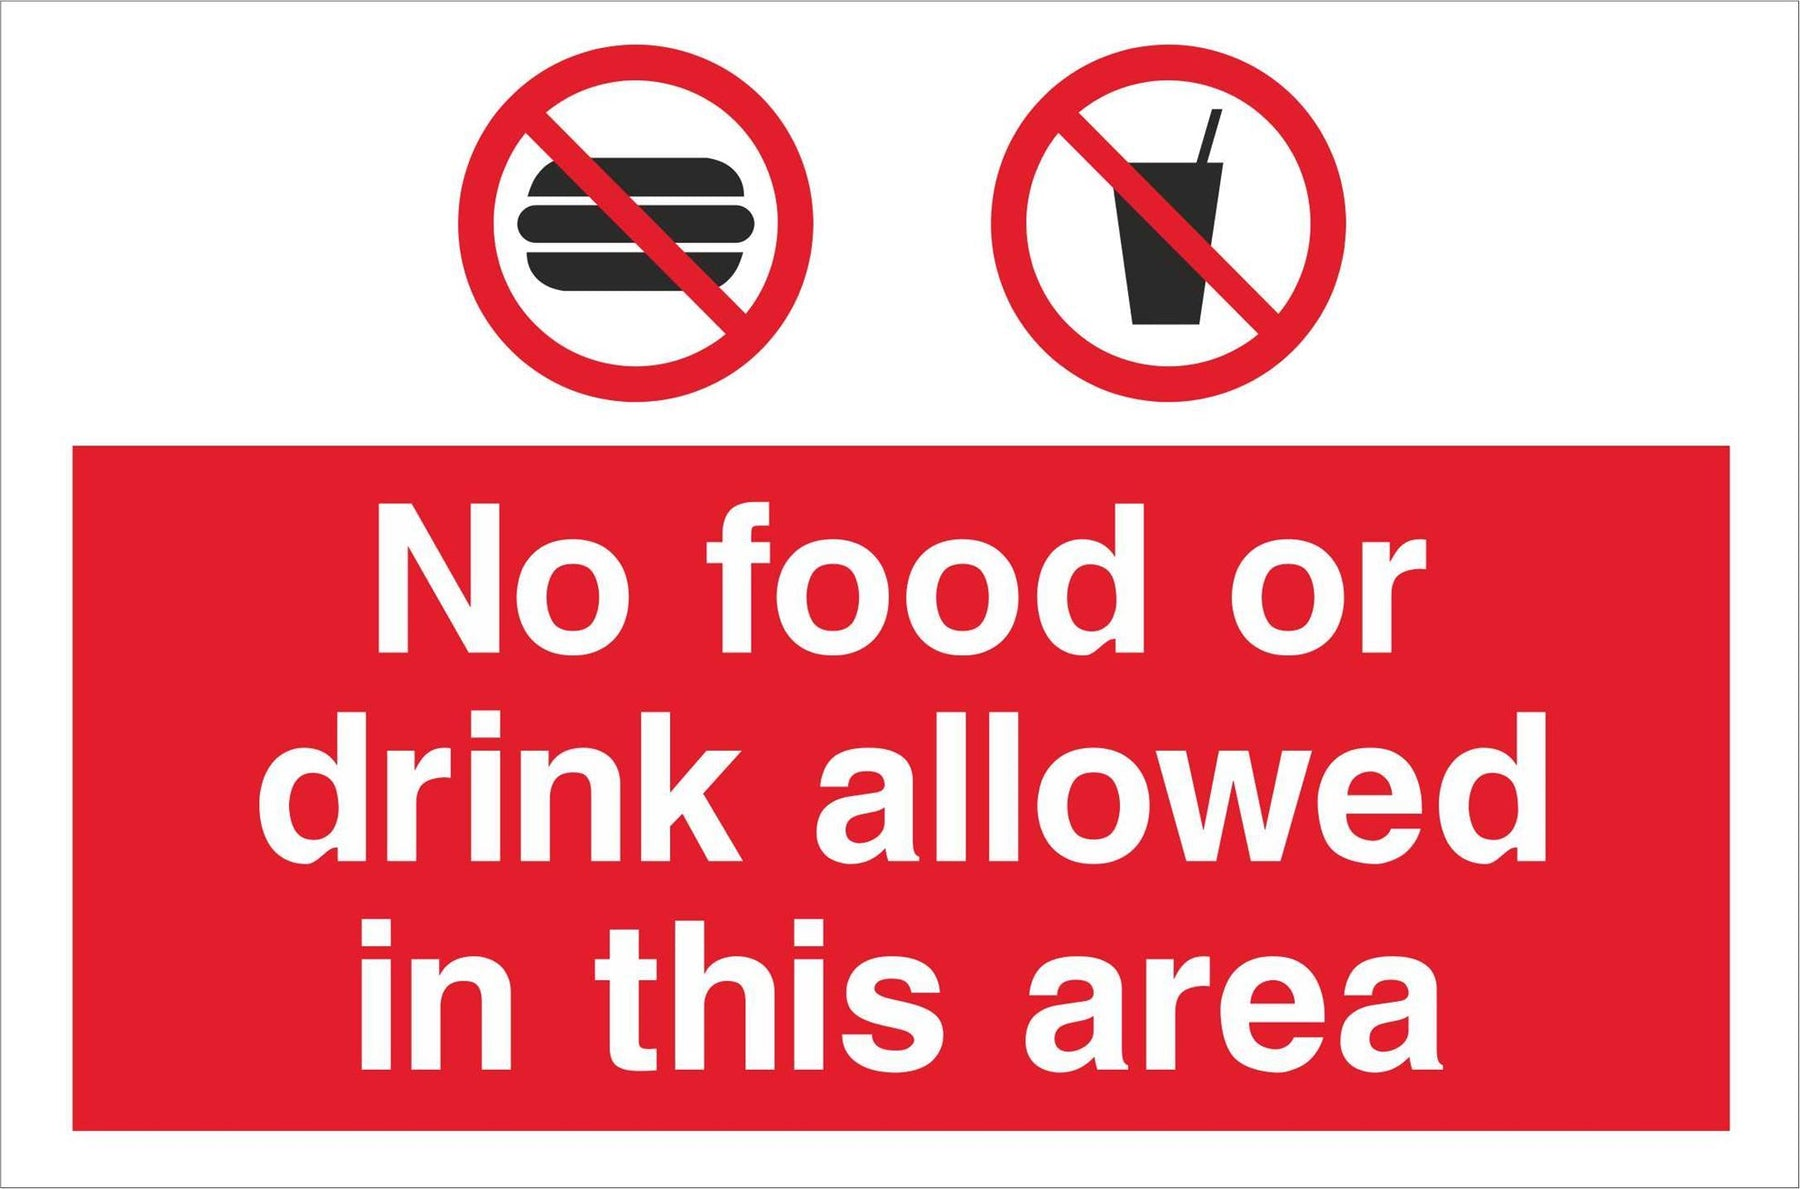 No food or drink allowed in this area